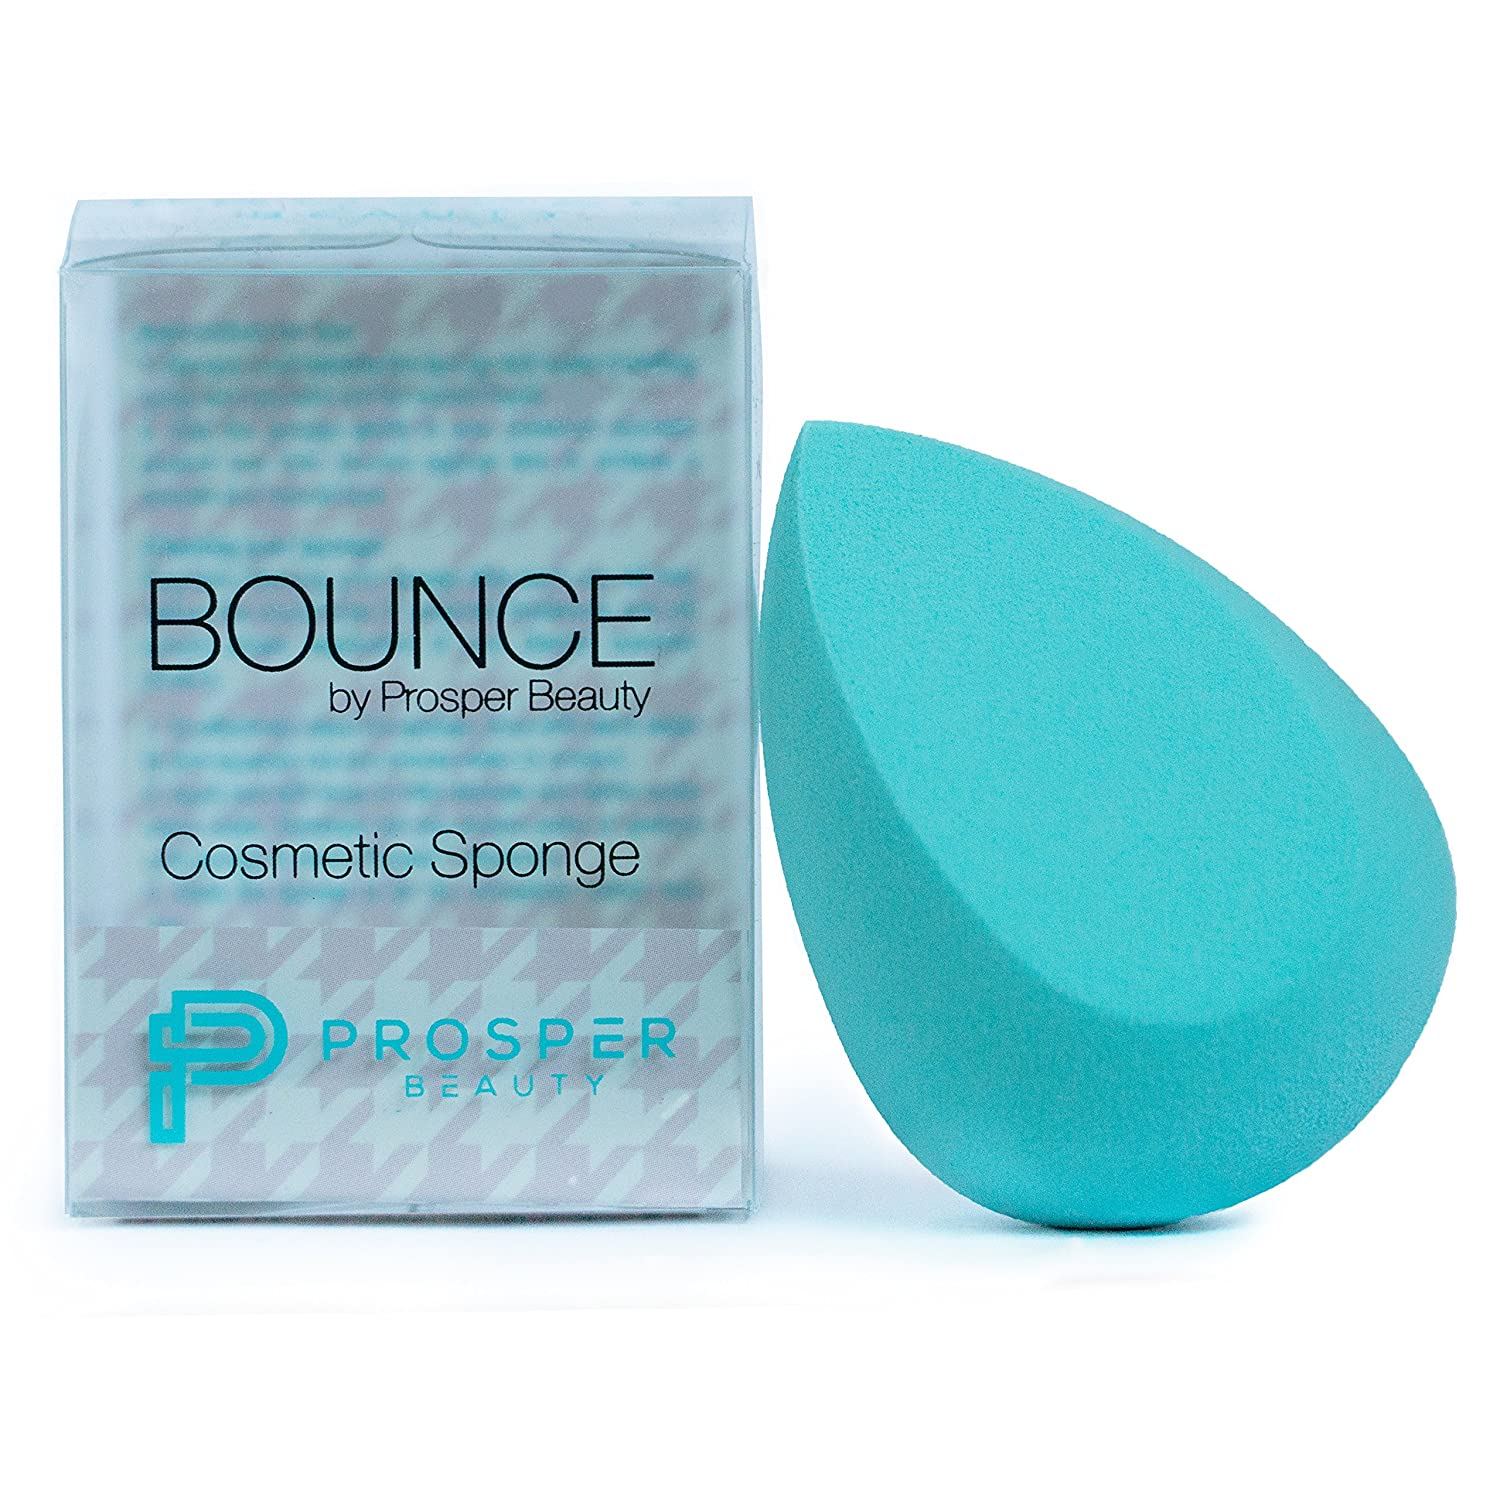 Beauty Sponge Makeup Blender Cosmetic [BOUNCE by Prosper Beauty] Premium Applicator Real Sponges and Blenders Tool Techniques for Foundation Concealer Powder Conturing Complexion